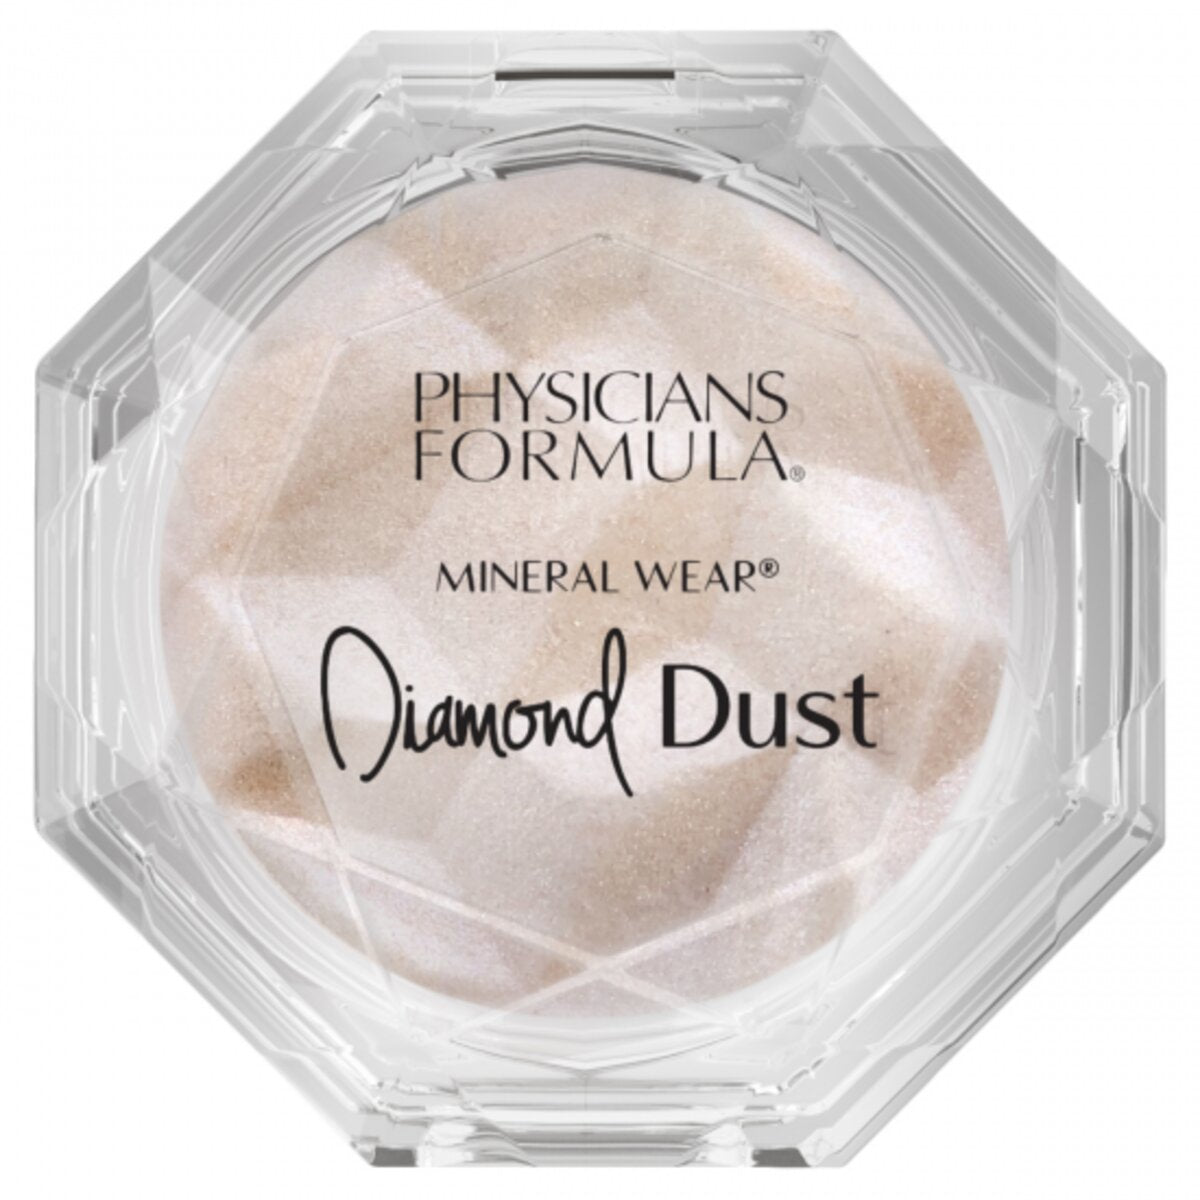 DIAMOND GLOW DUST STARLIT GLOW - PHYSICIANS FORMULA